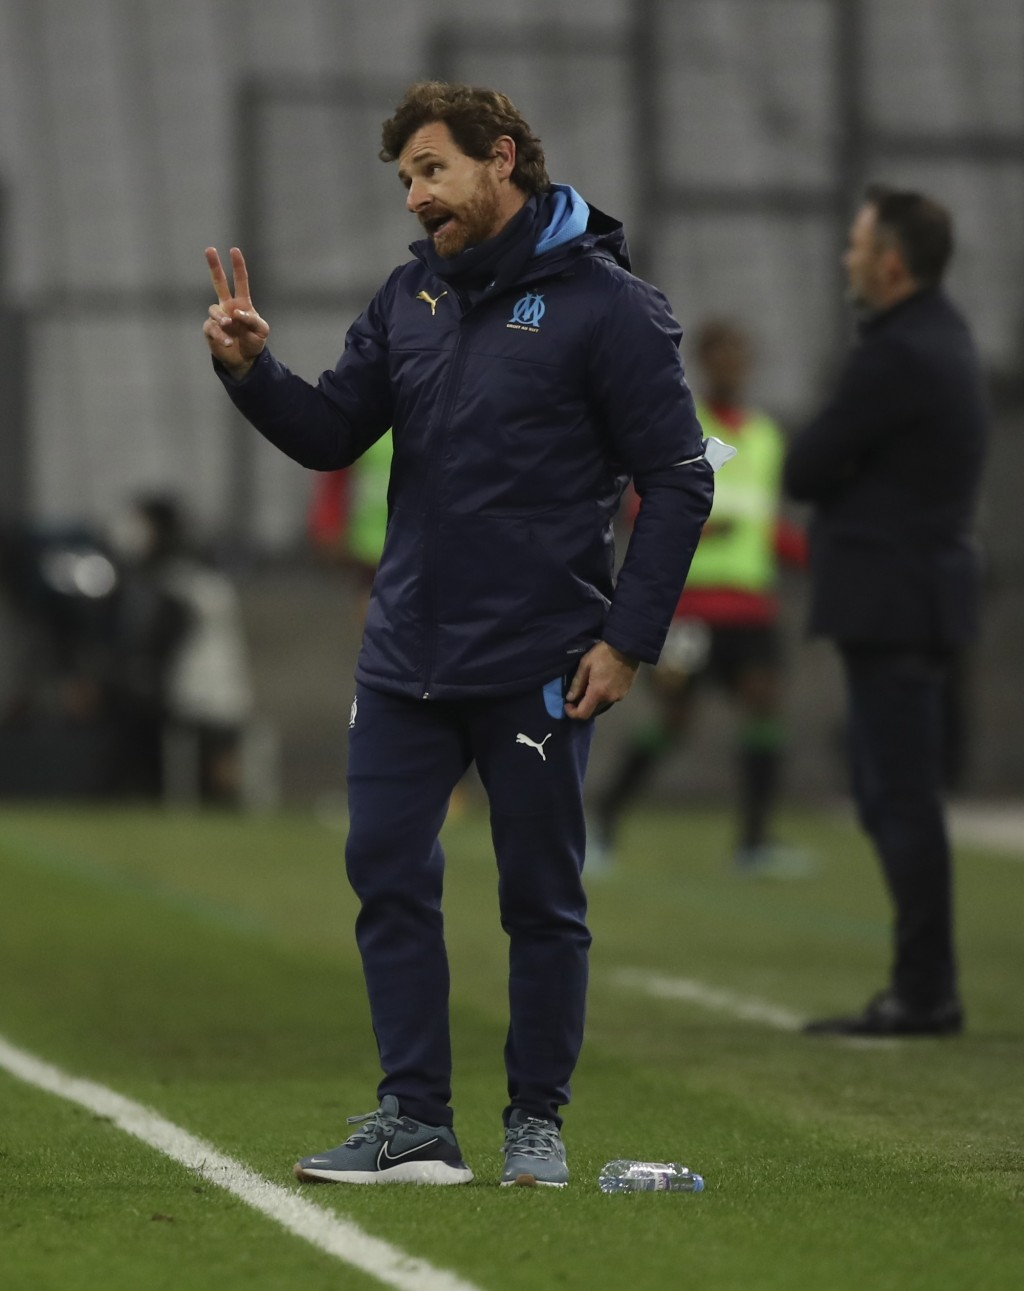 Marseille's head coach Andre Villas-Boas reacts during the French League One soccer match between Marseille and Lens at the Veledrome stadium in Marse...